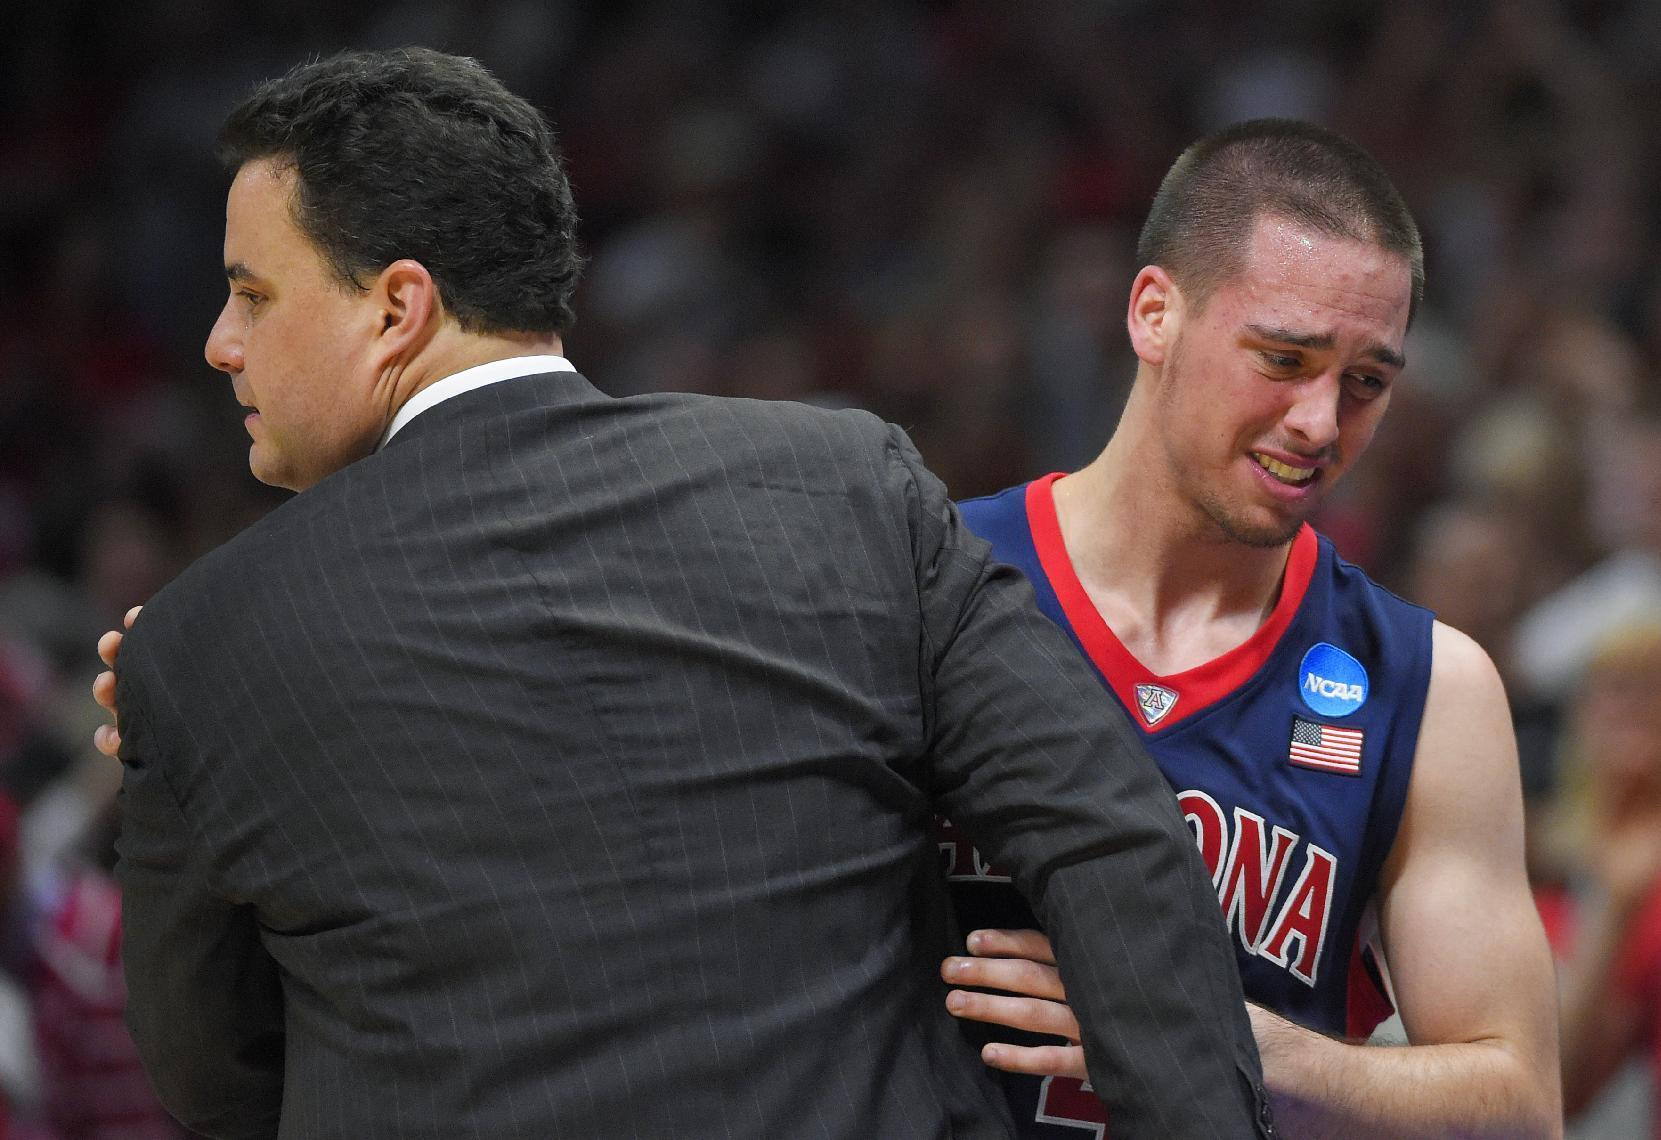 Arizona coach Sean Miller to dissatisfied fans: 'Go cheer for ASU'